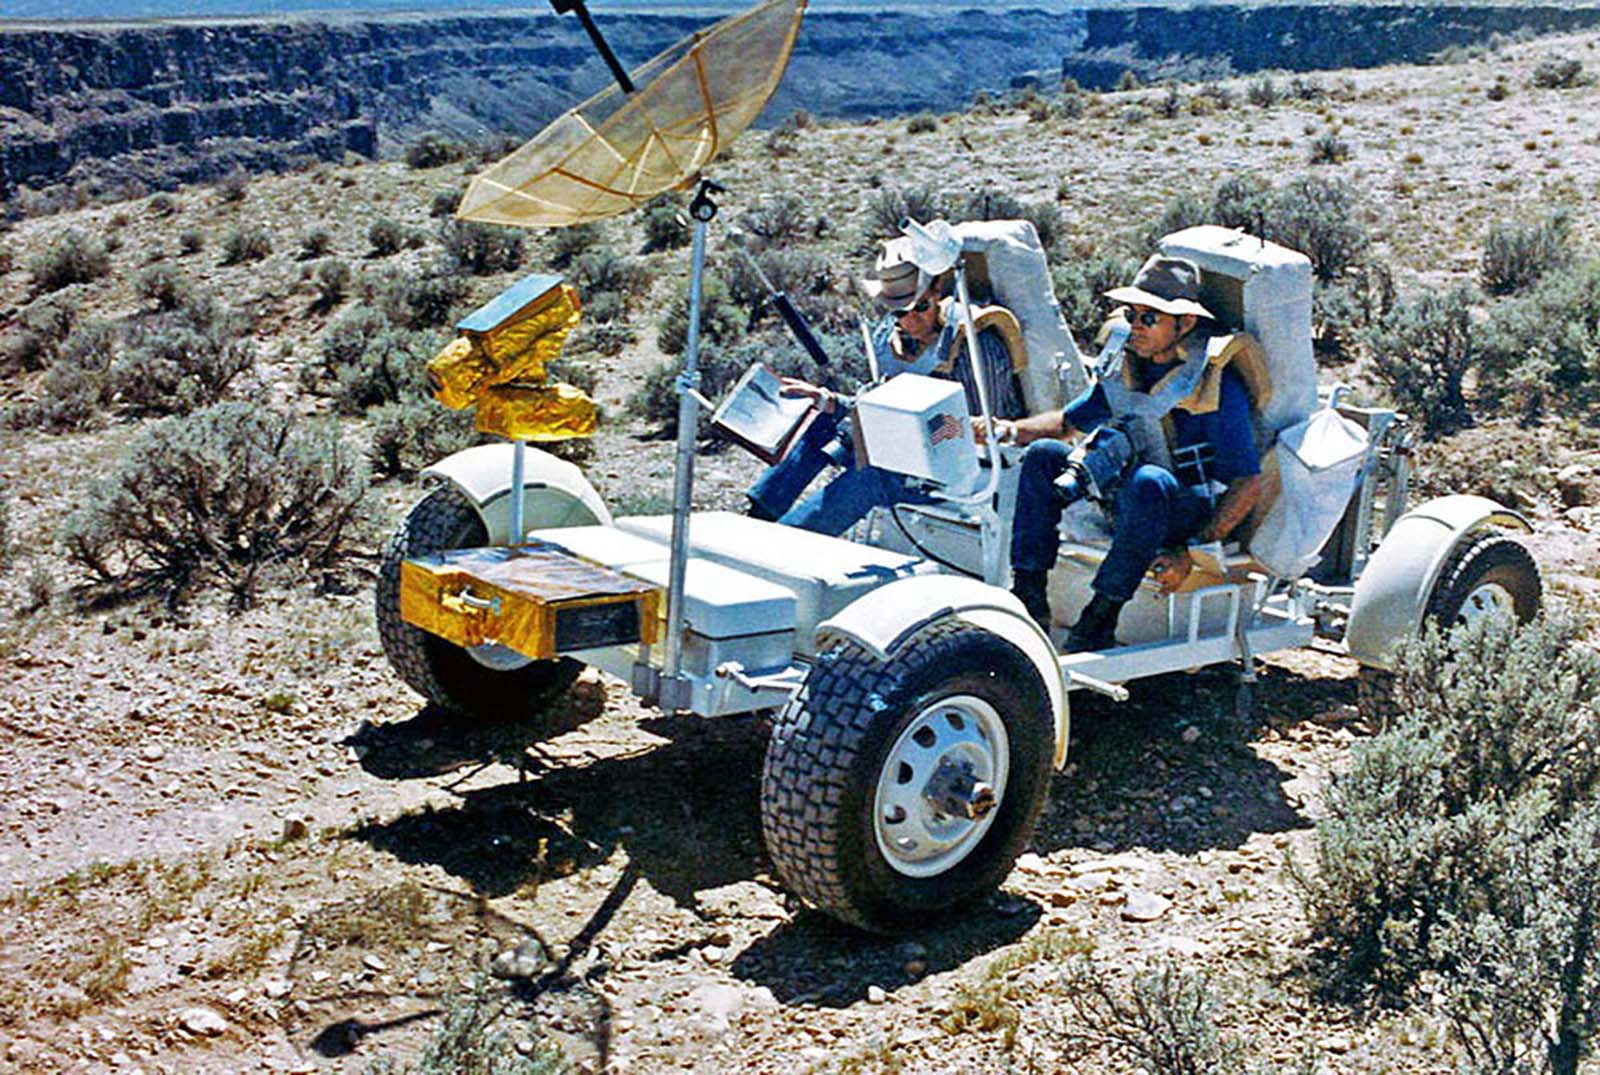 The Apollo astronauts Charles Duke and John Young train on the geological rover, or